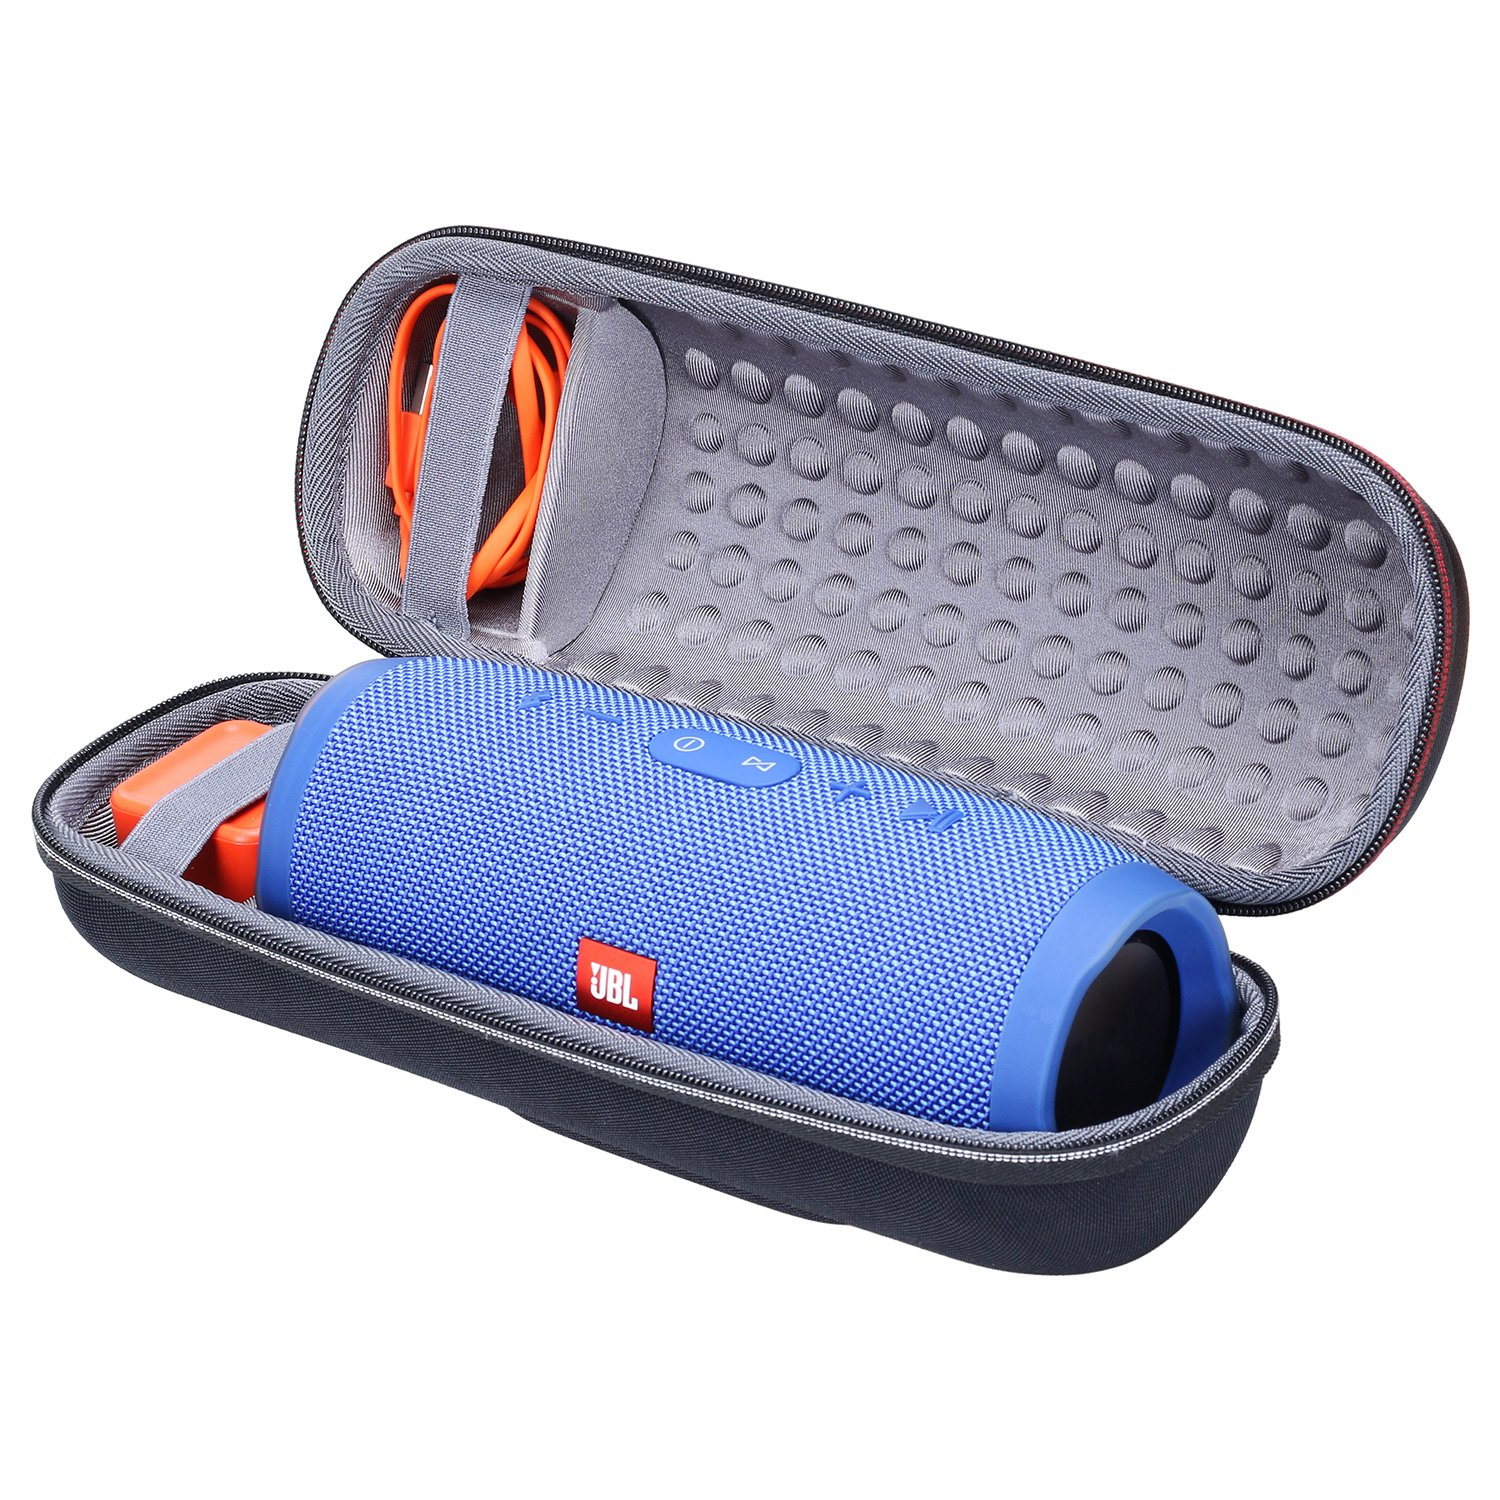 XANAD Case for JBL Charge 3 Speaker Hard Storage Carrying protective Bag